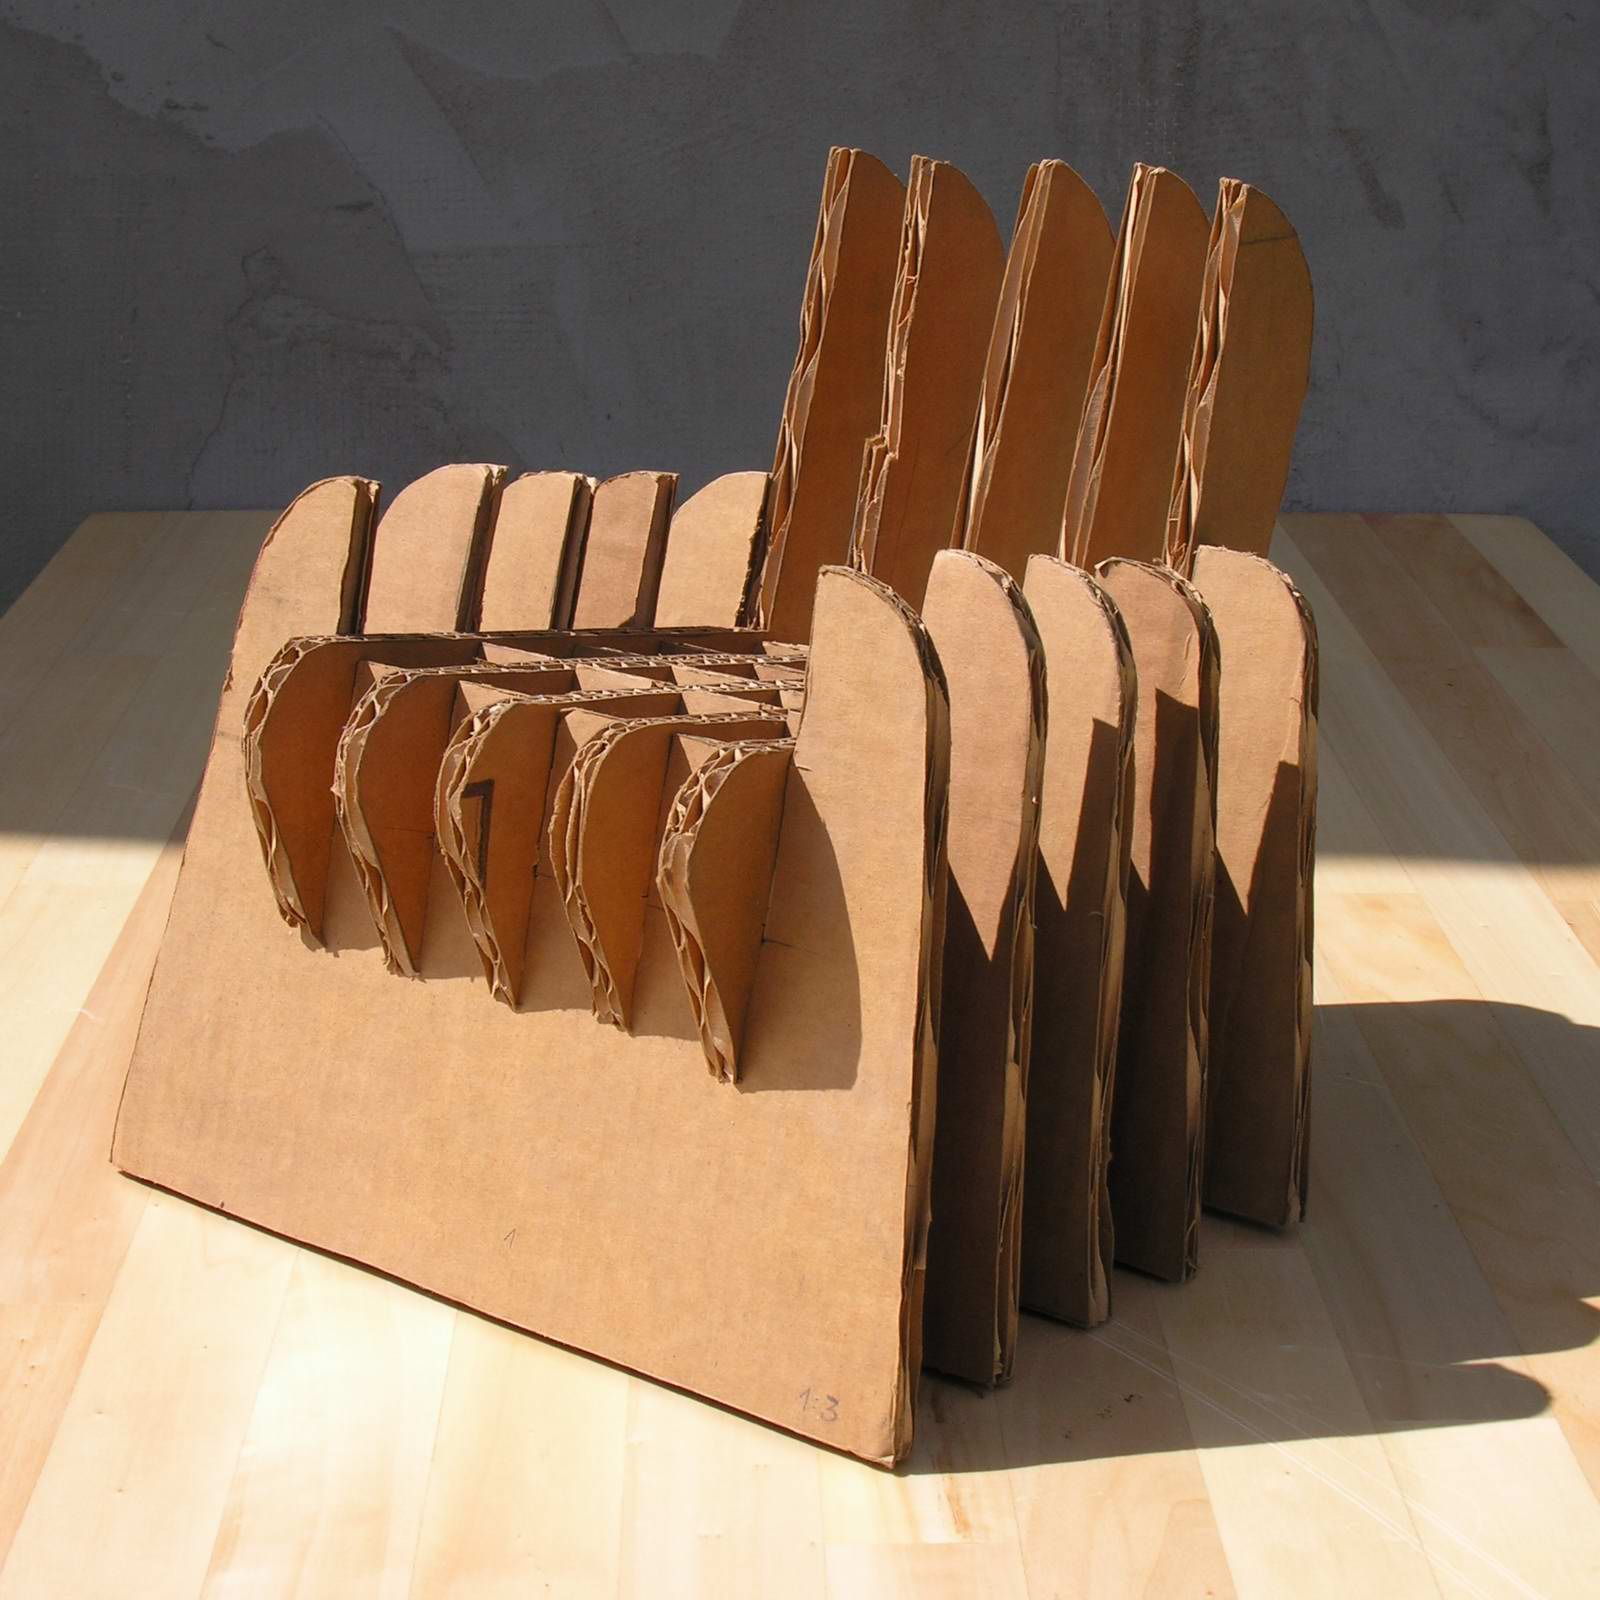 Corrugated Cardboard Chair google image result for http://www.pacalowski/images/projects